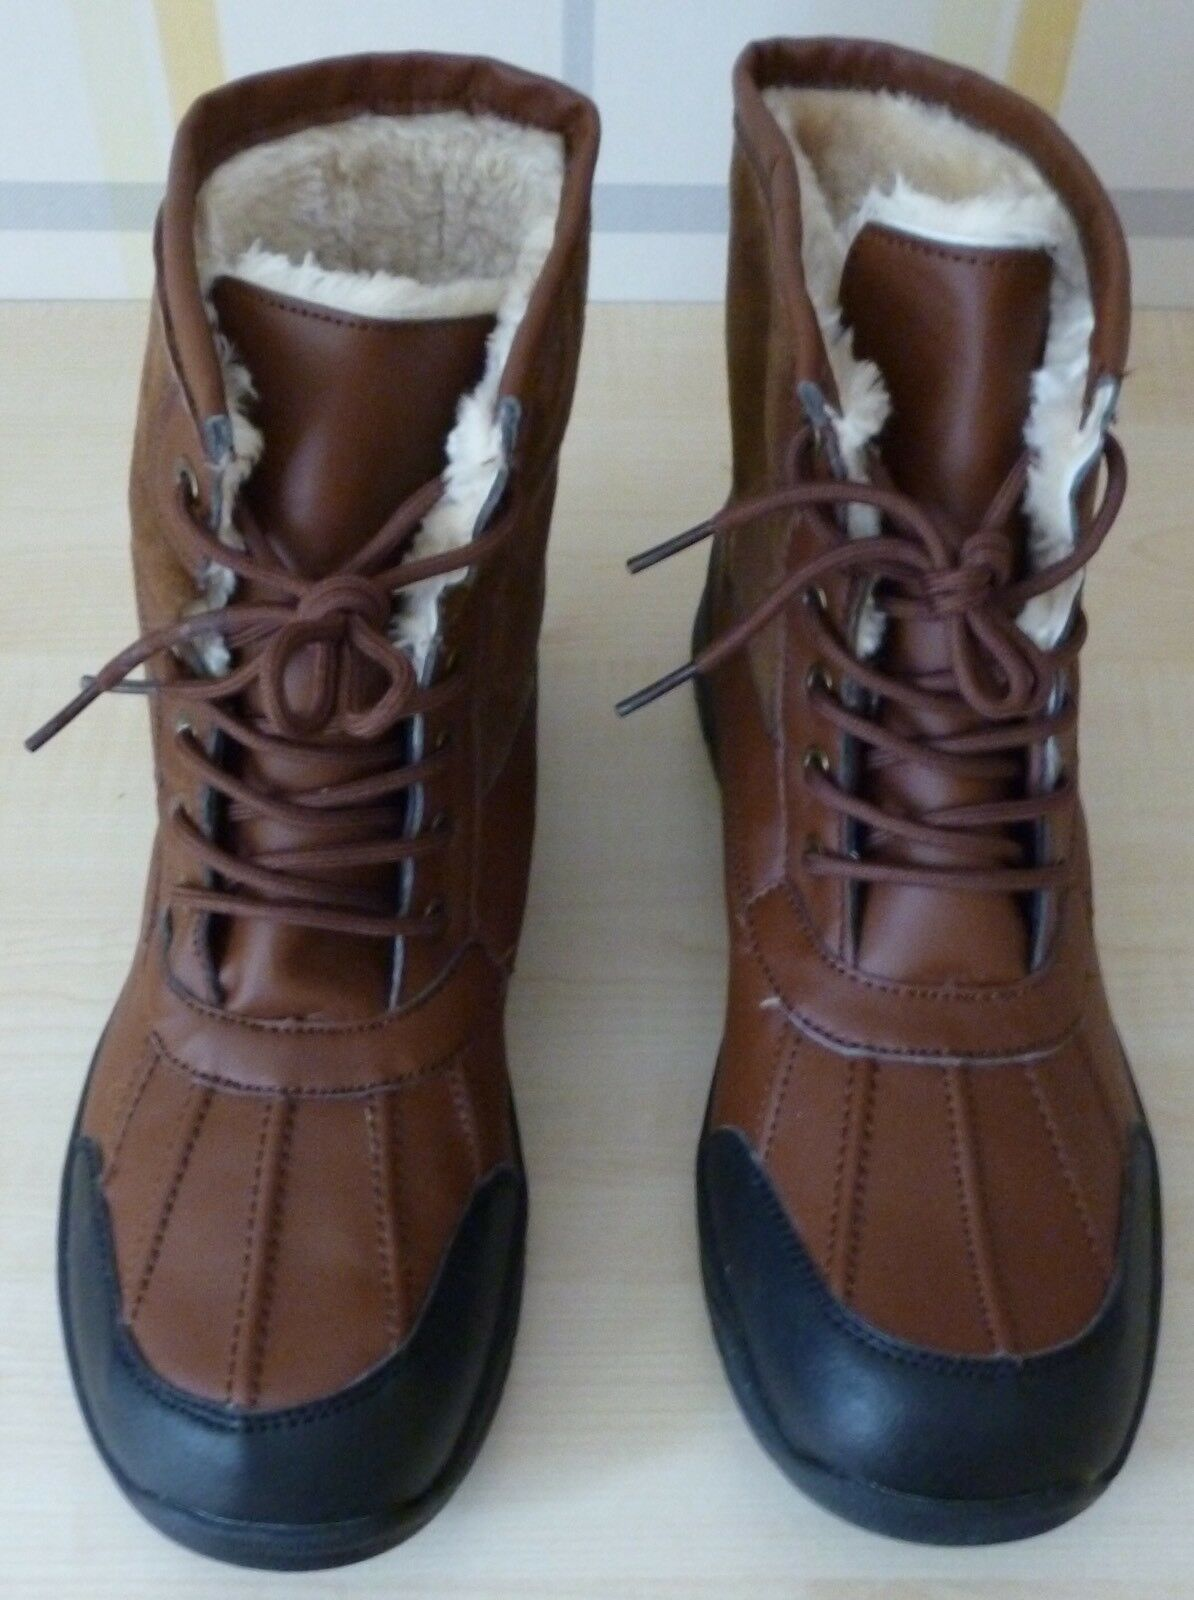 MENS NEW IDEAL FULLY FUR LINED BOOTS IDEAL NEW FOR RAIN & SNOW SIZE 9/43 bc9cd8